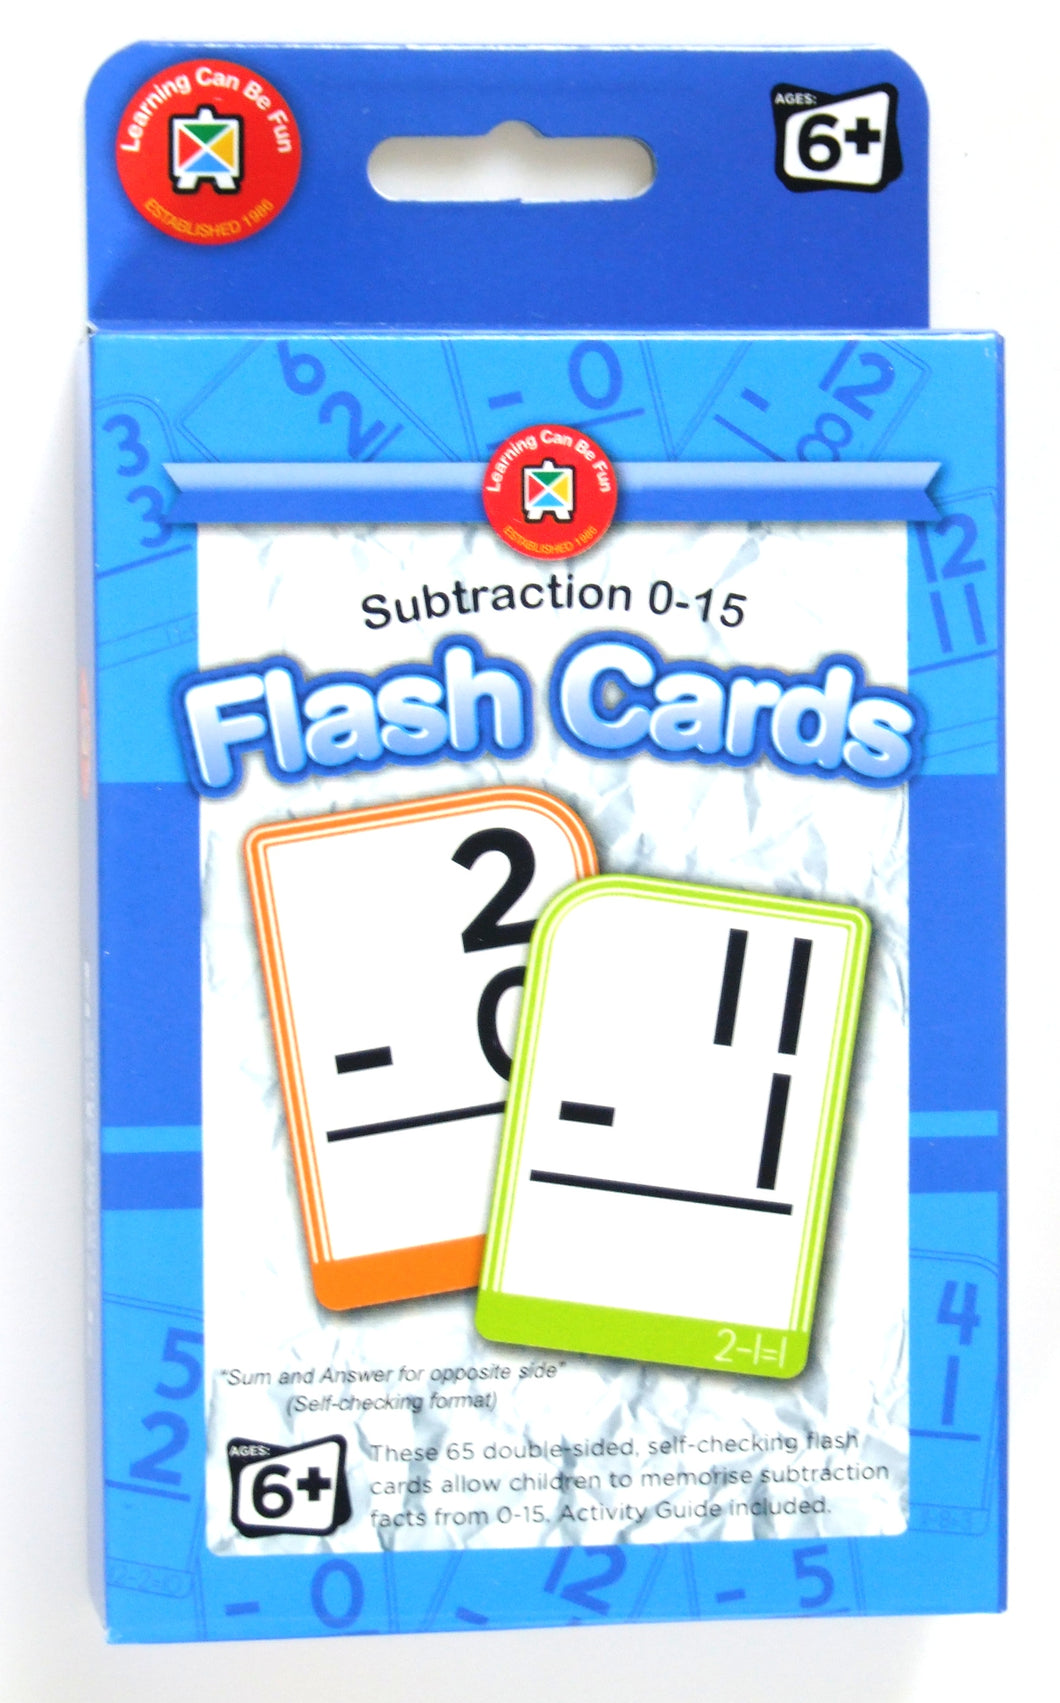 Substraction 0-15 Flash Cards